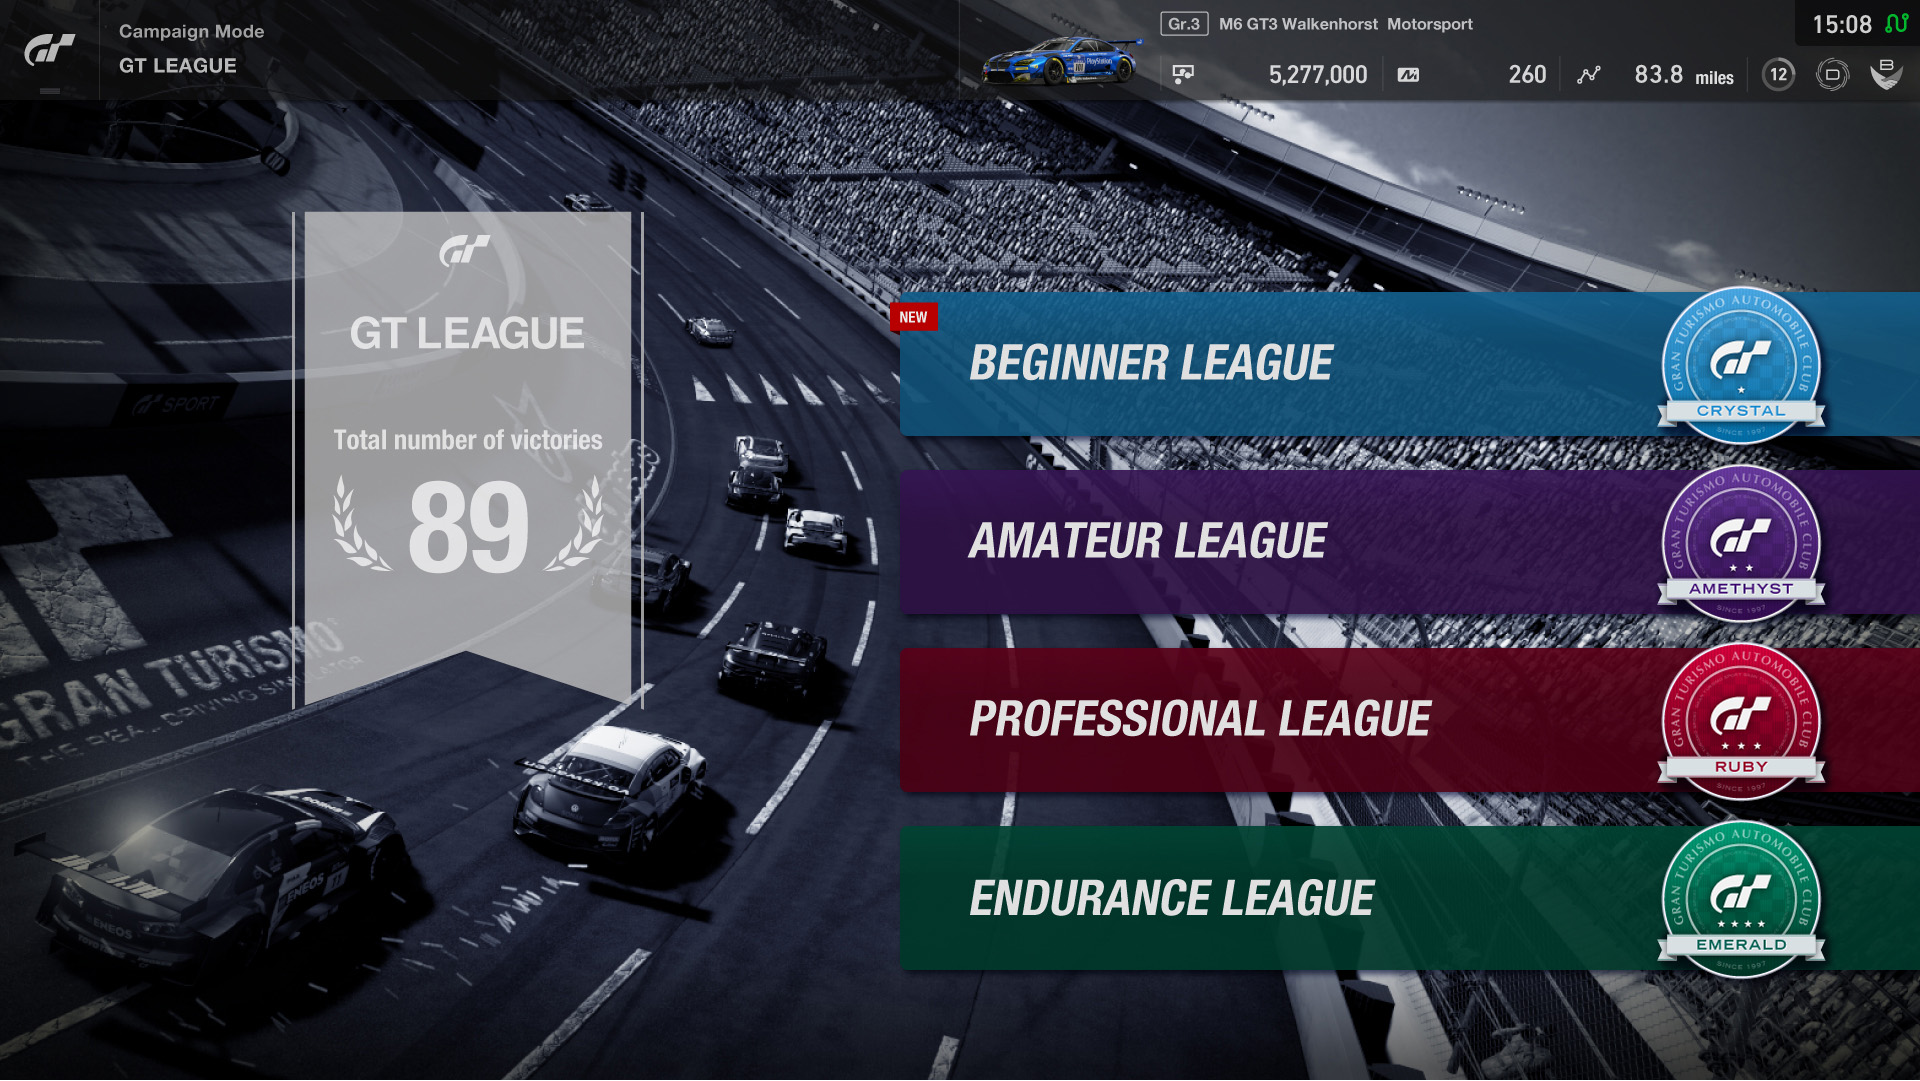 'GT League' single player campaign coming to Gran Turismo Sport in December 2017